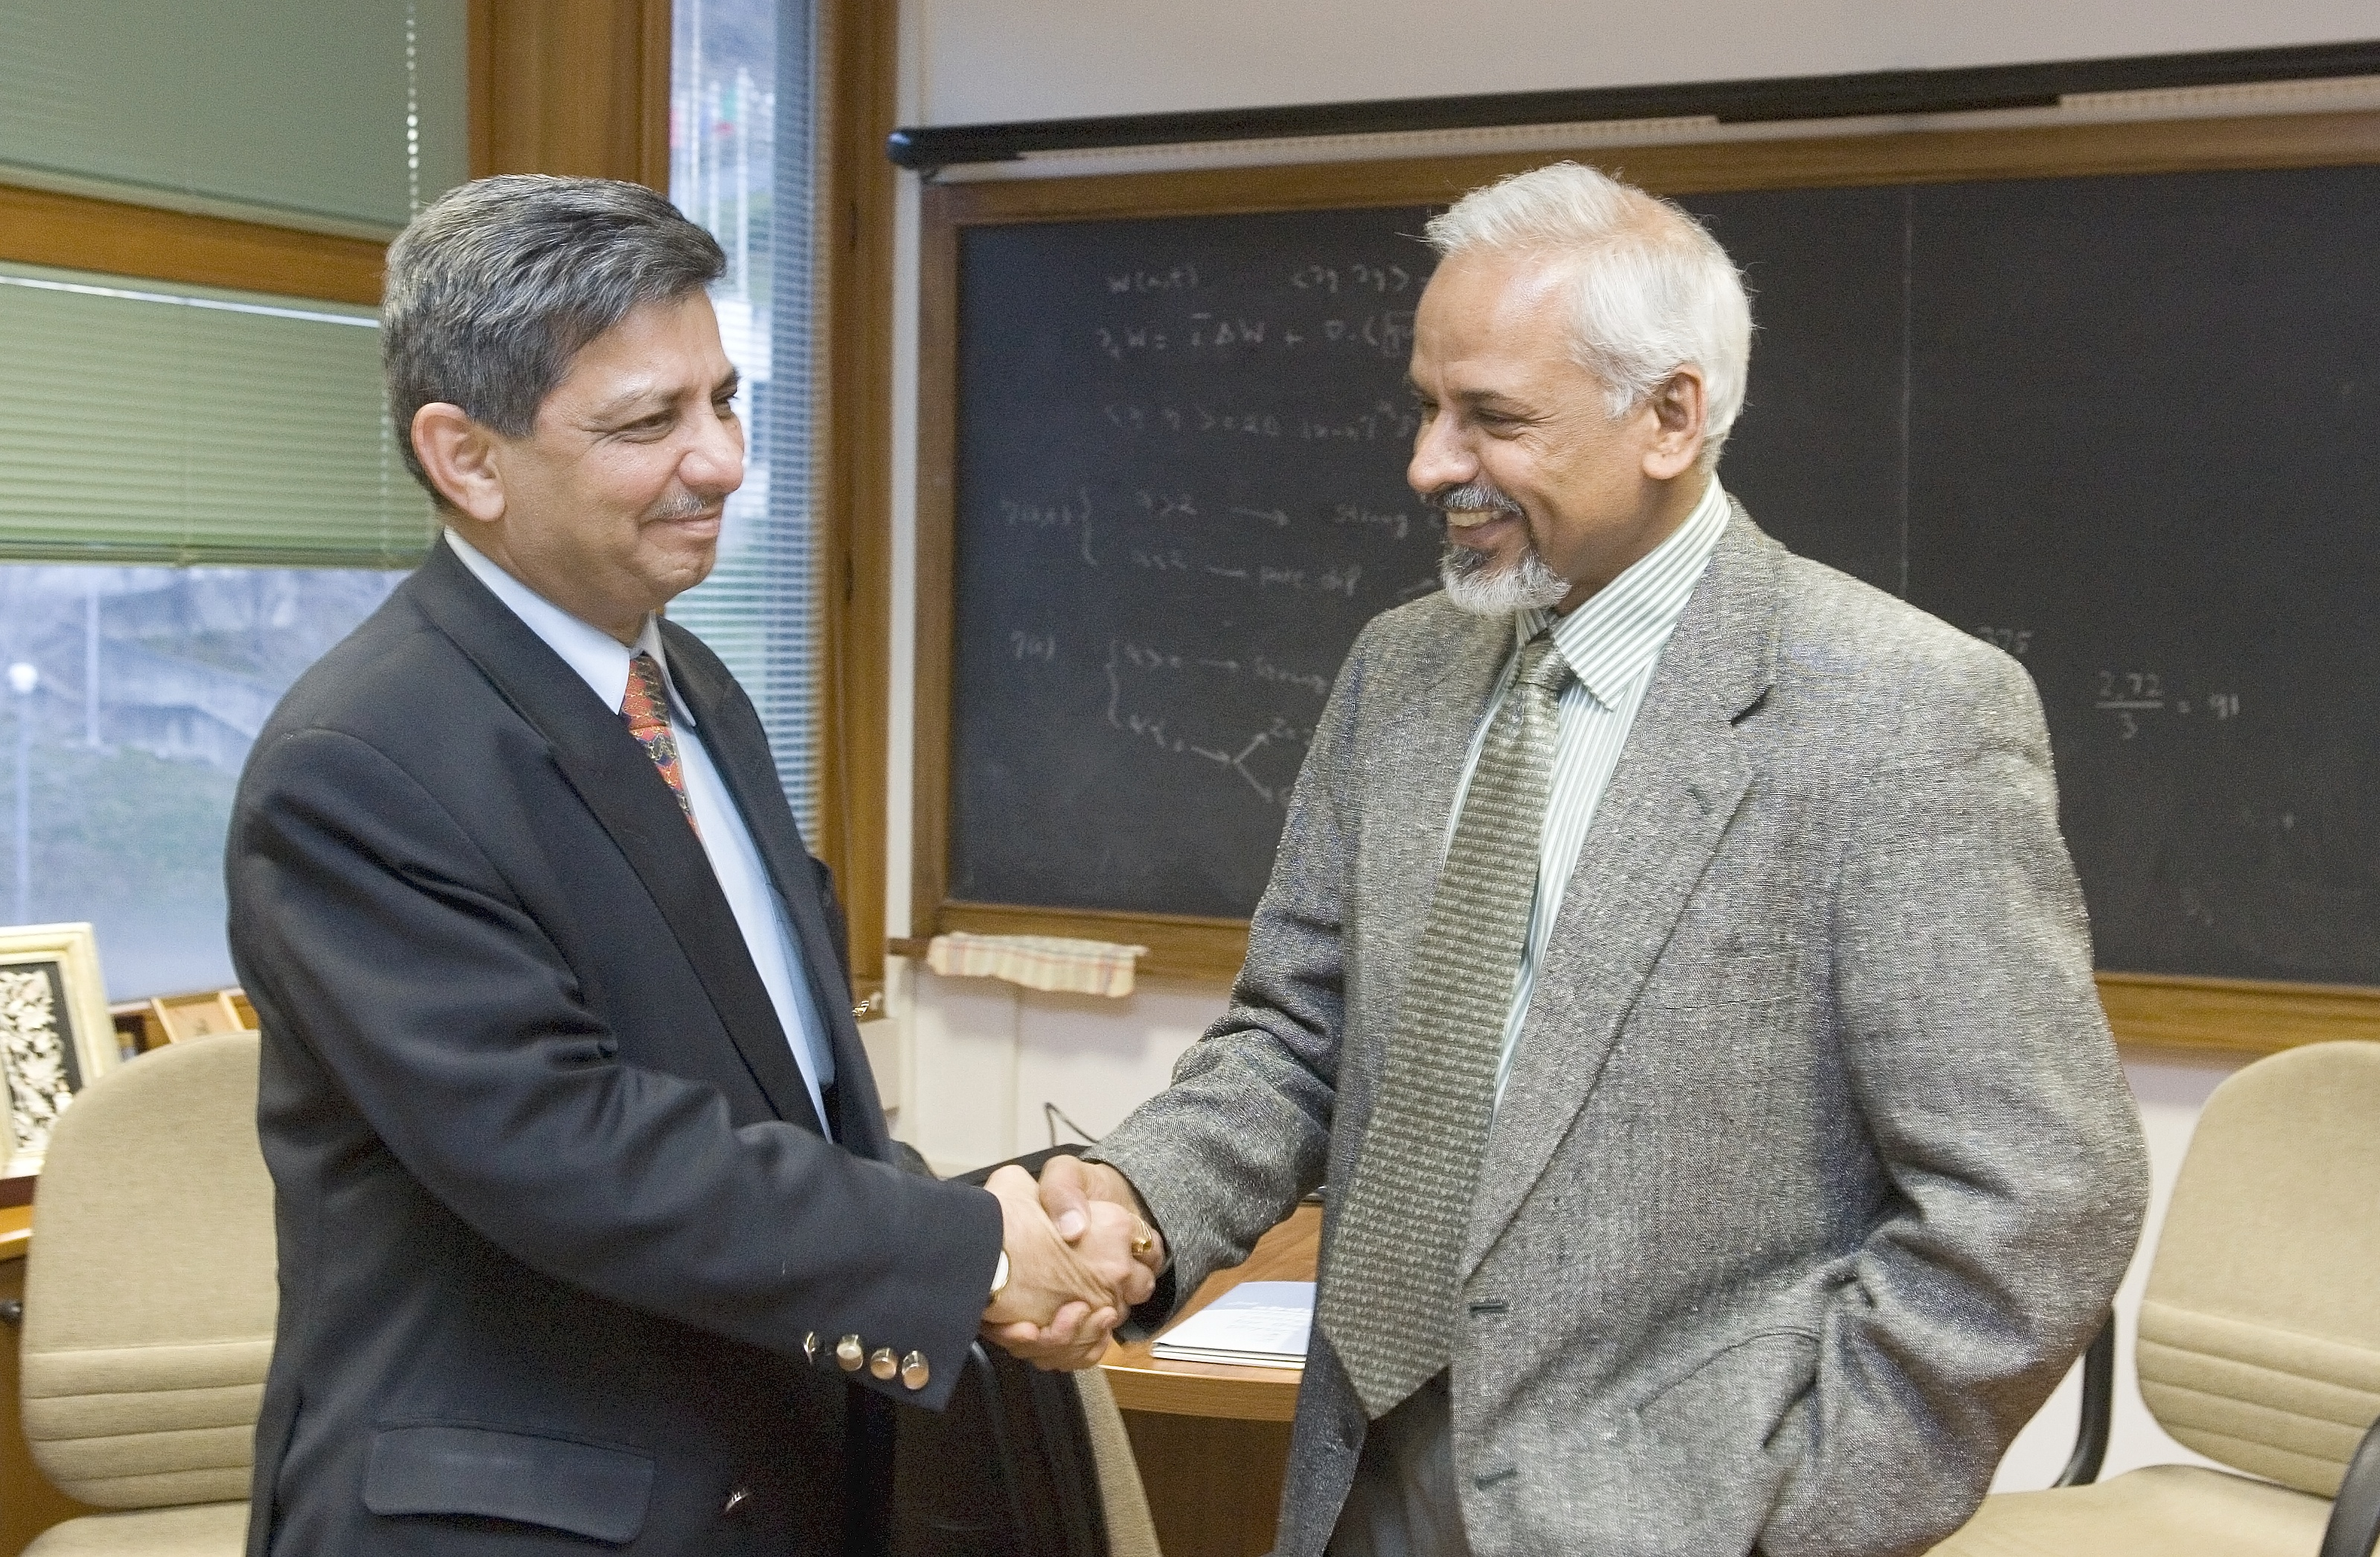 R. Dogra and K.R. Sreenivasan